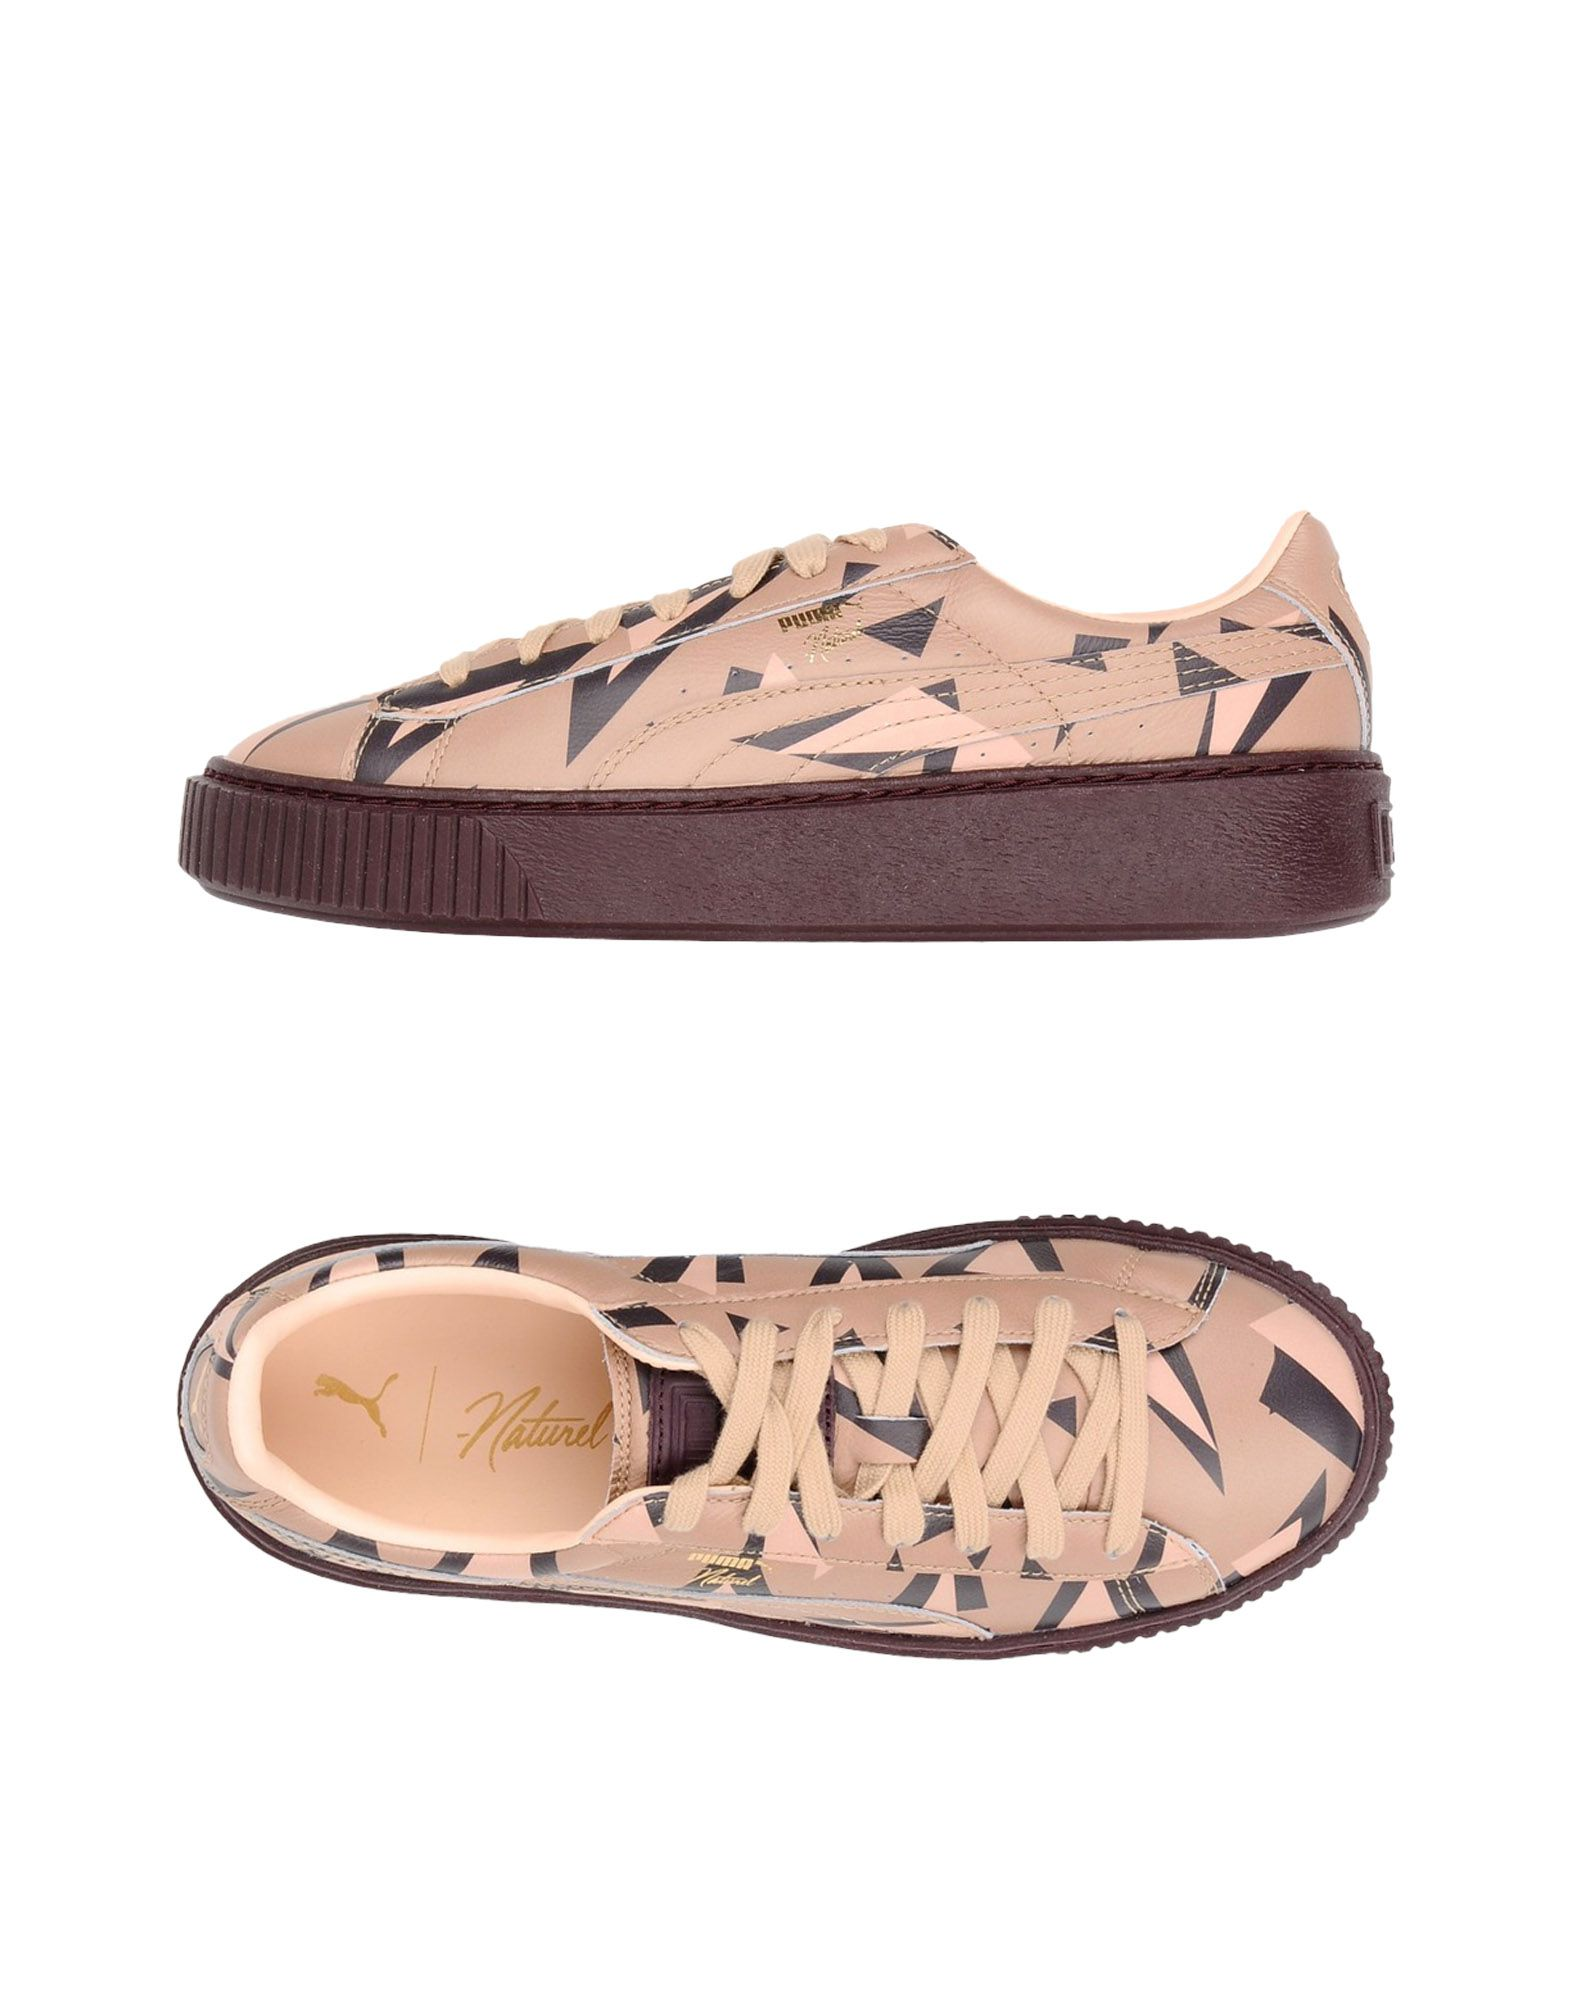 Puma X Naturel   Platformgraph  Naturel 11385586PG  b67611